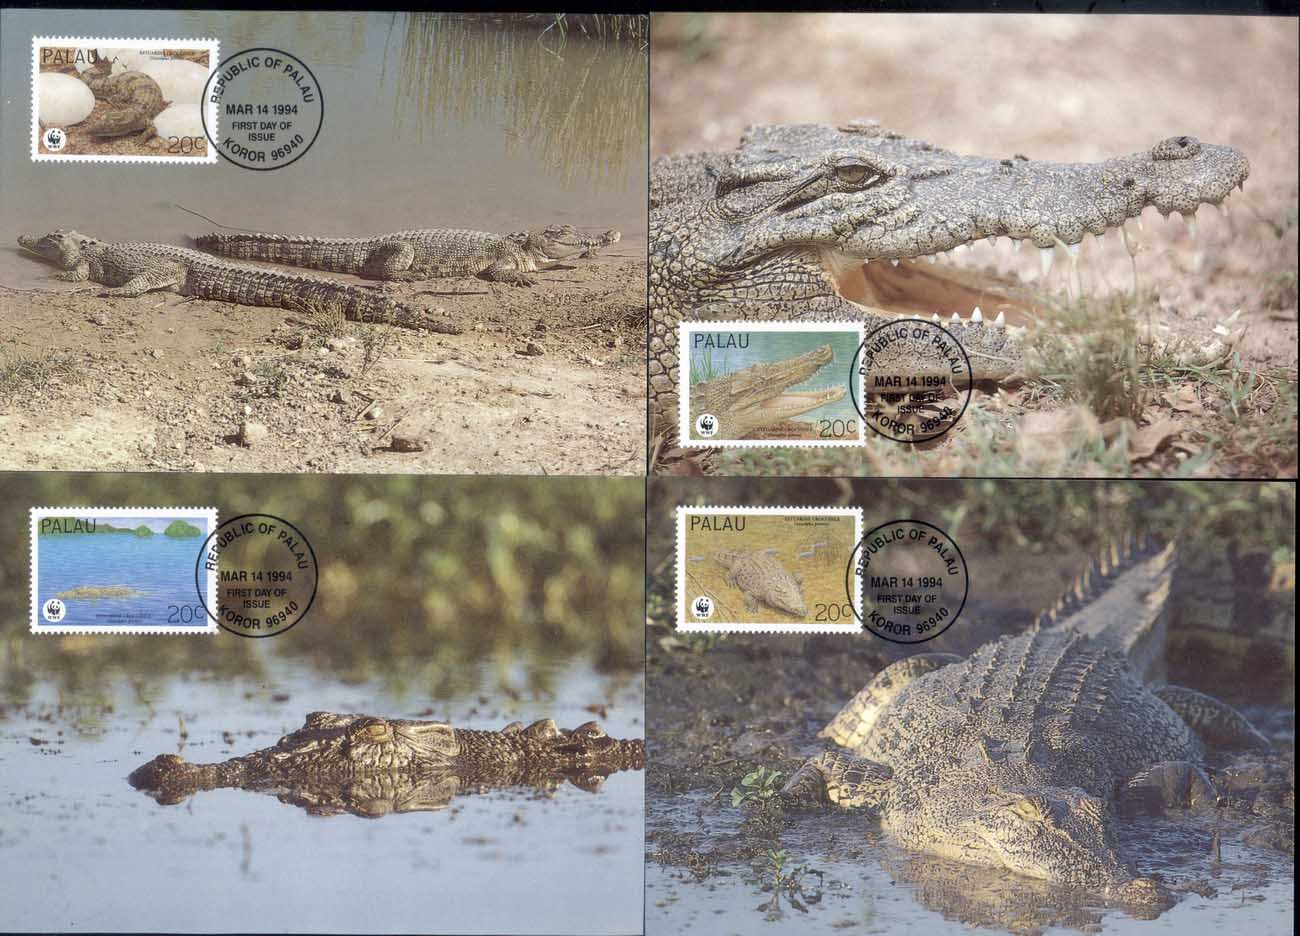 Palau 1994 WWF Estuarine Crocodile Maxicards